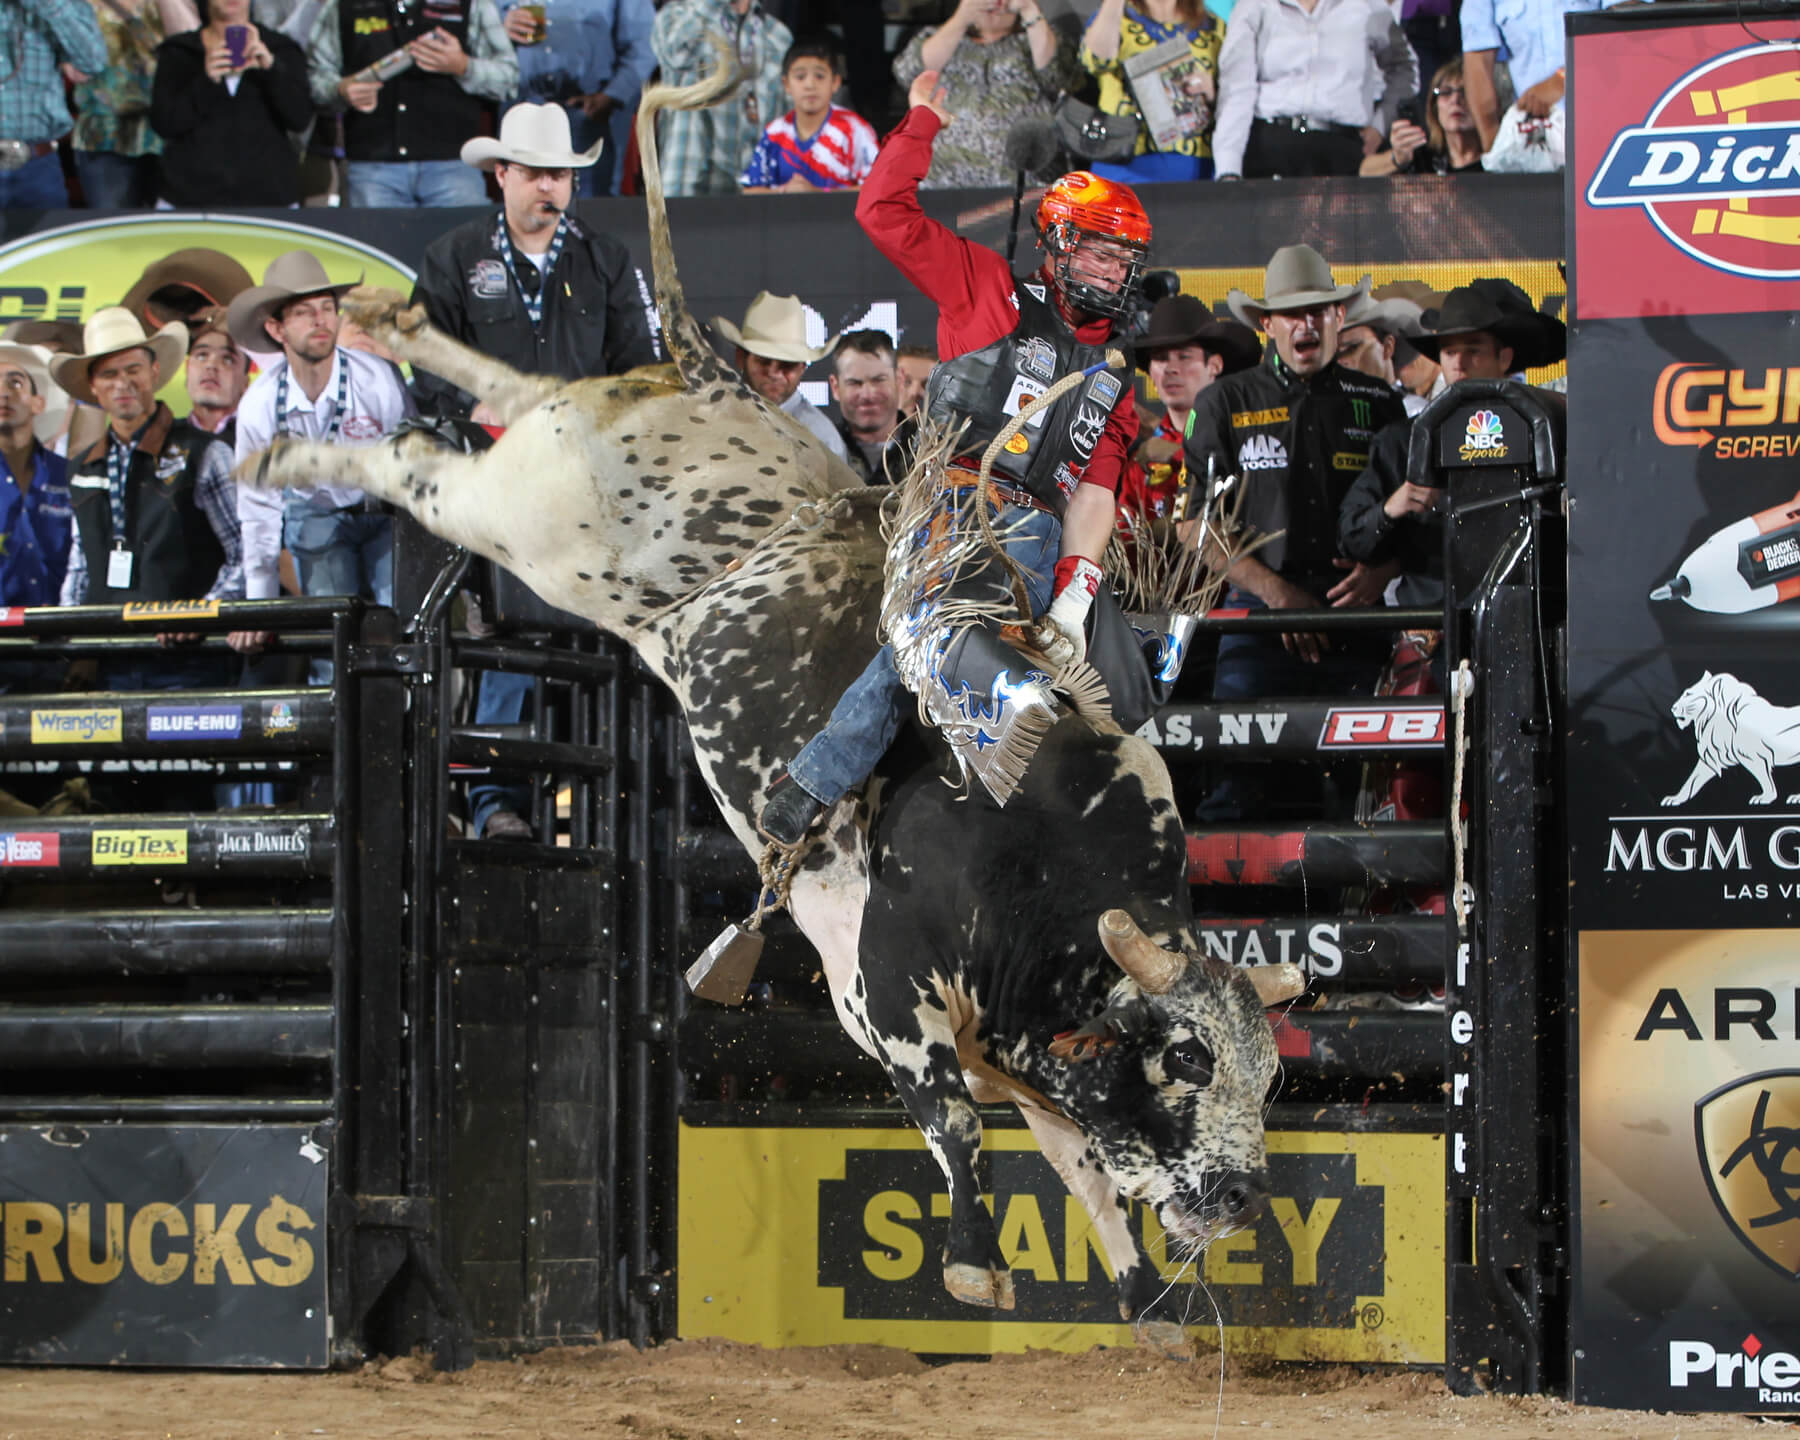 Professional bull riders charge into Mobile Civic Center